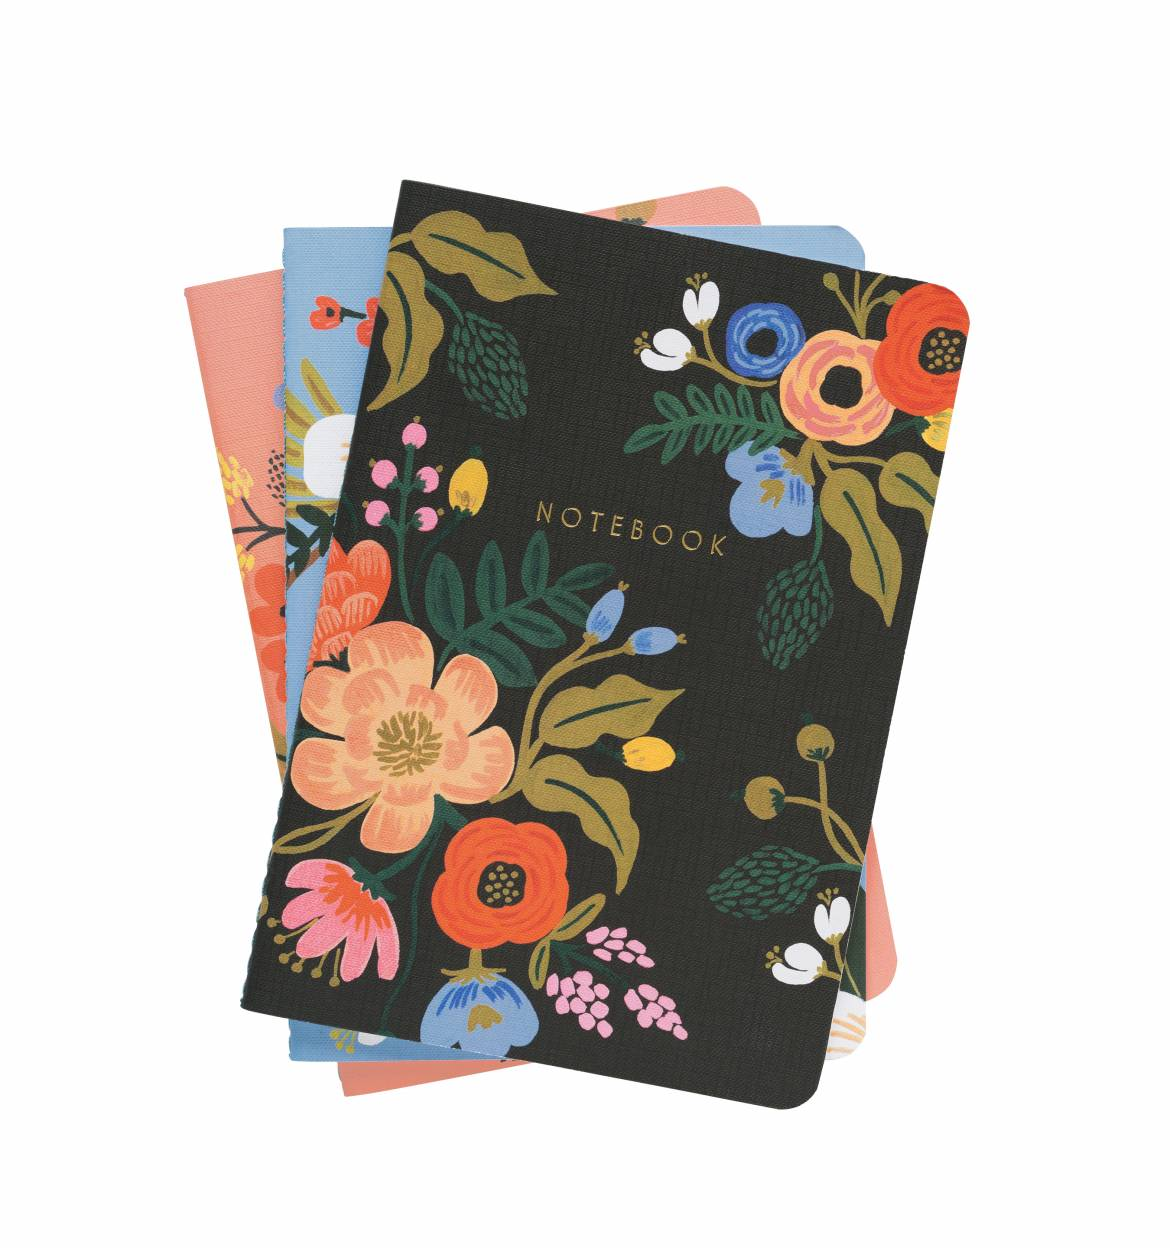 j3a001-lively-floral-notebooks-01_1.jpg